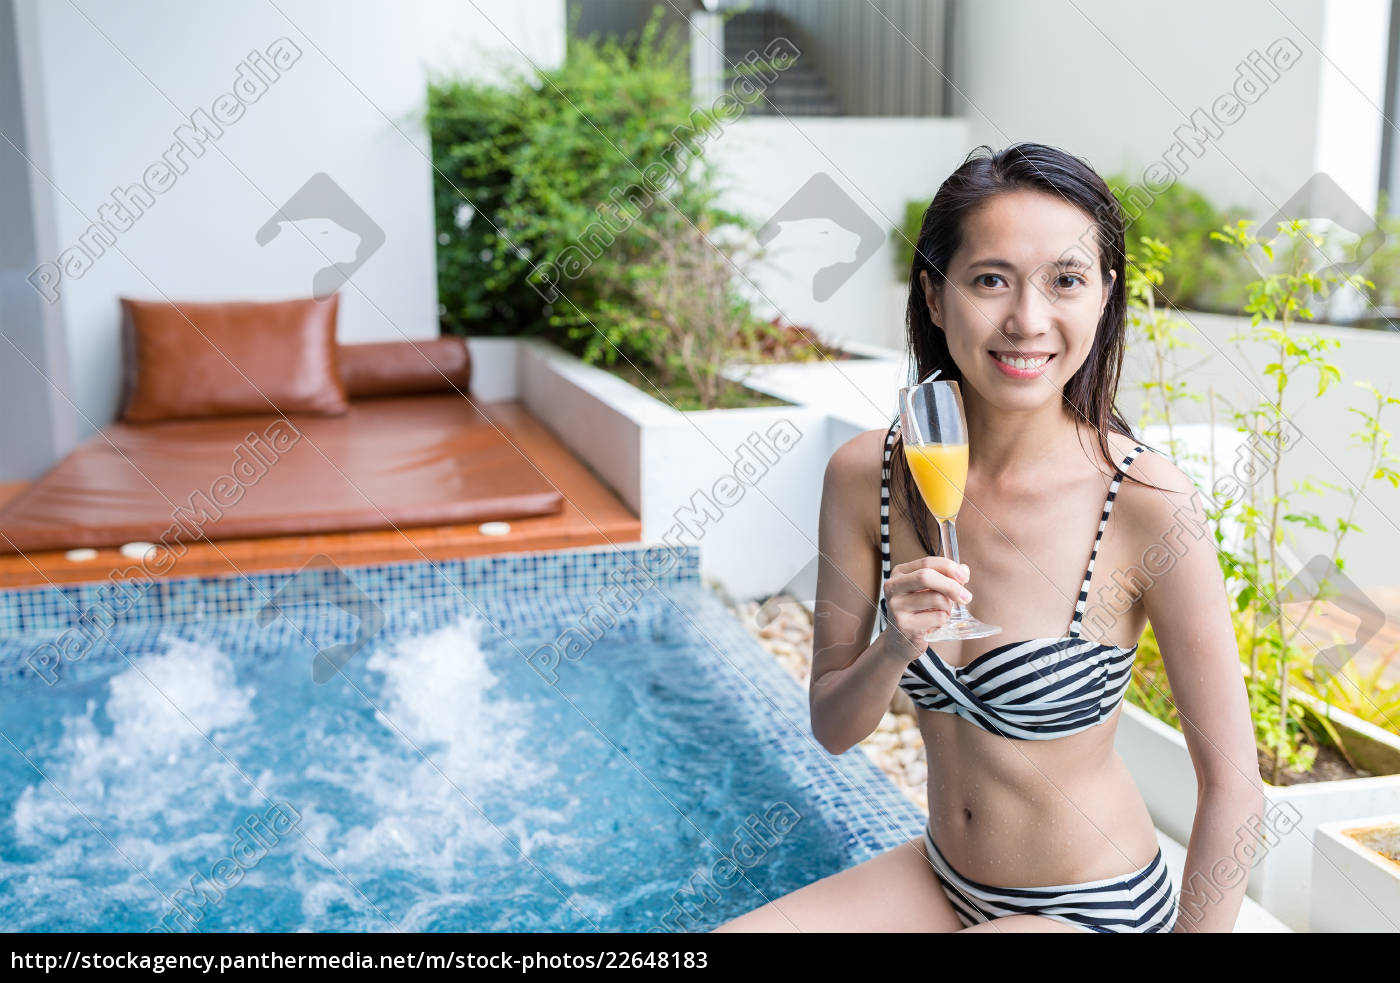 woman, enjoy, jacuzzi, spa, and, drink - 22648183